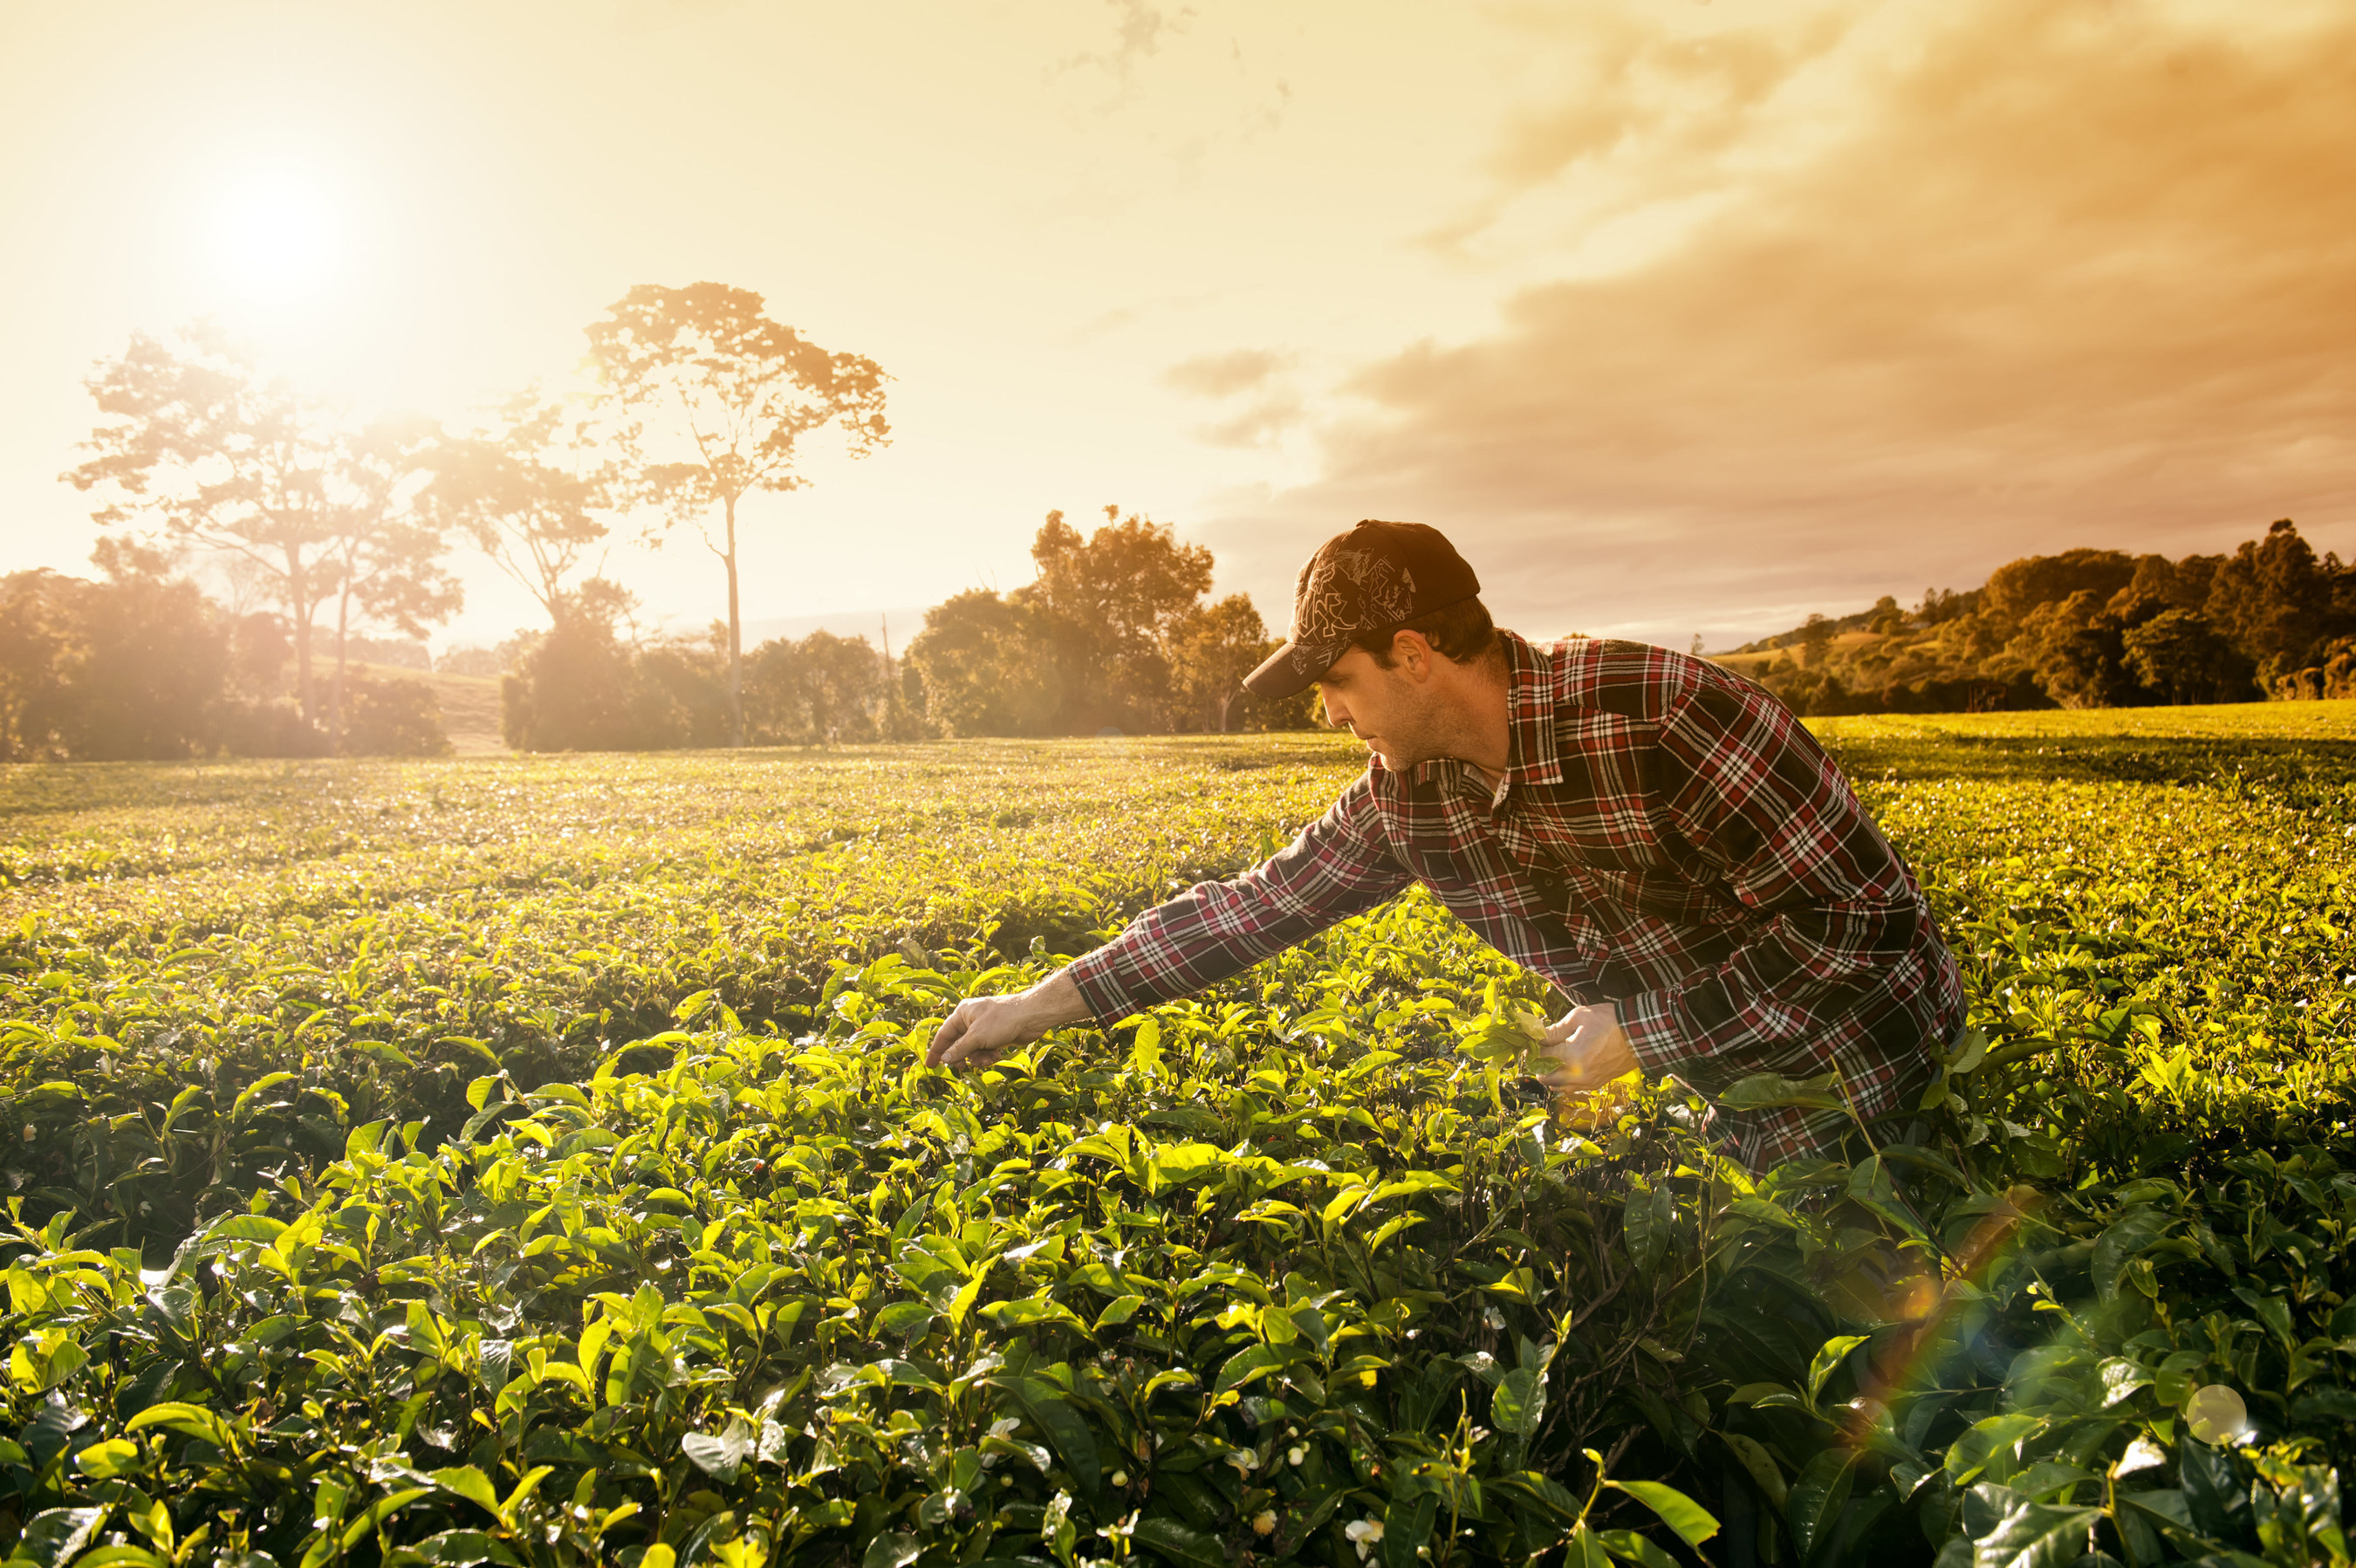 Madura Tea - An Australian Success Story 'From Plantation to Cup'